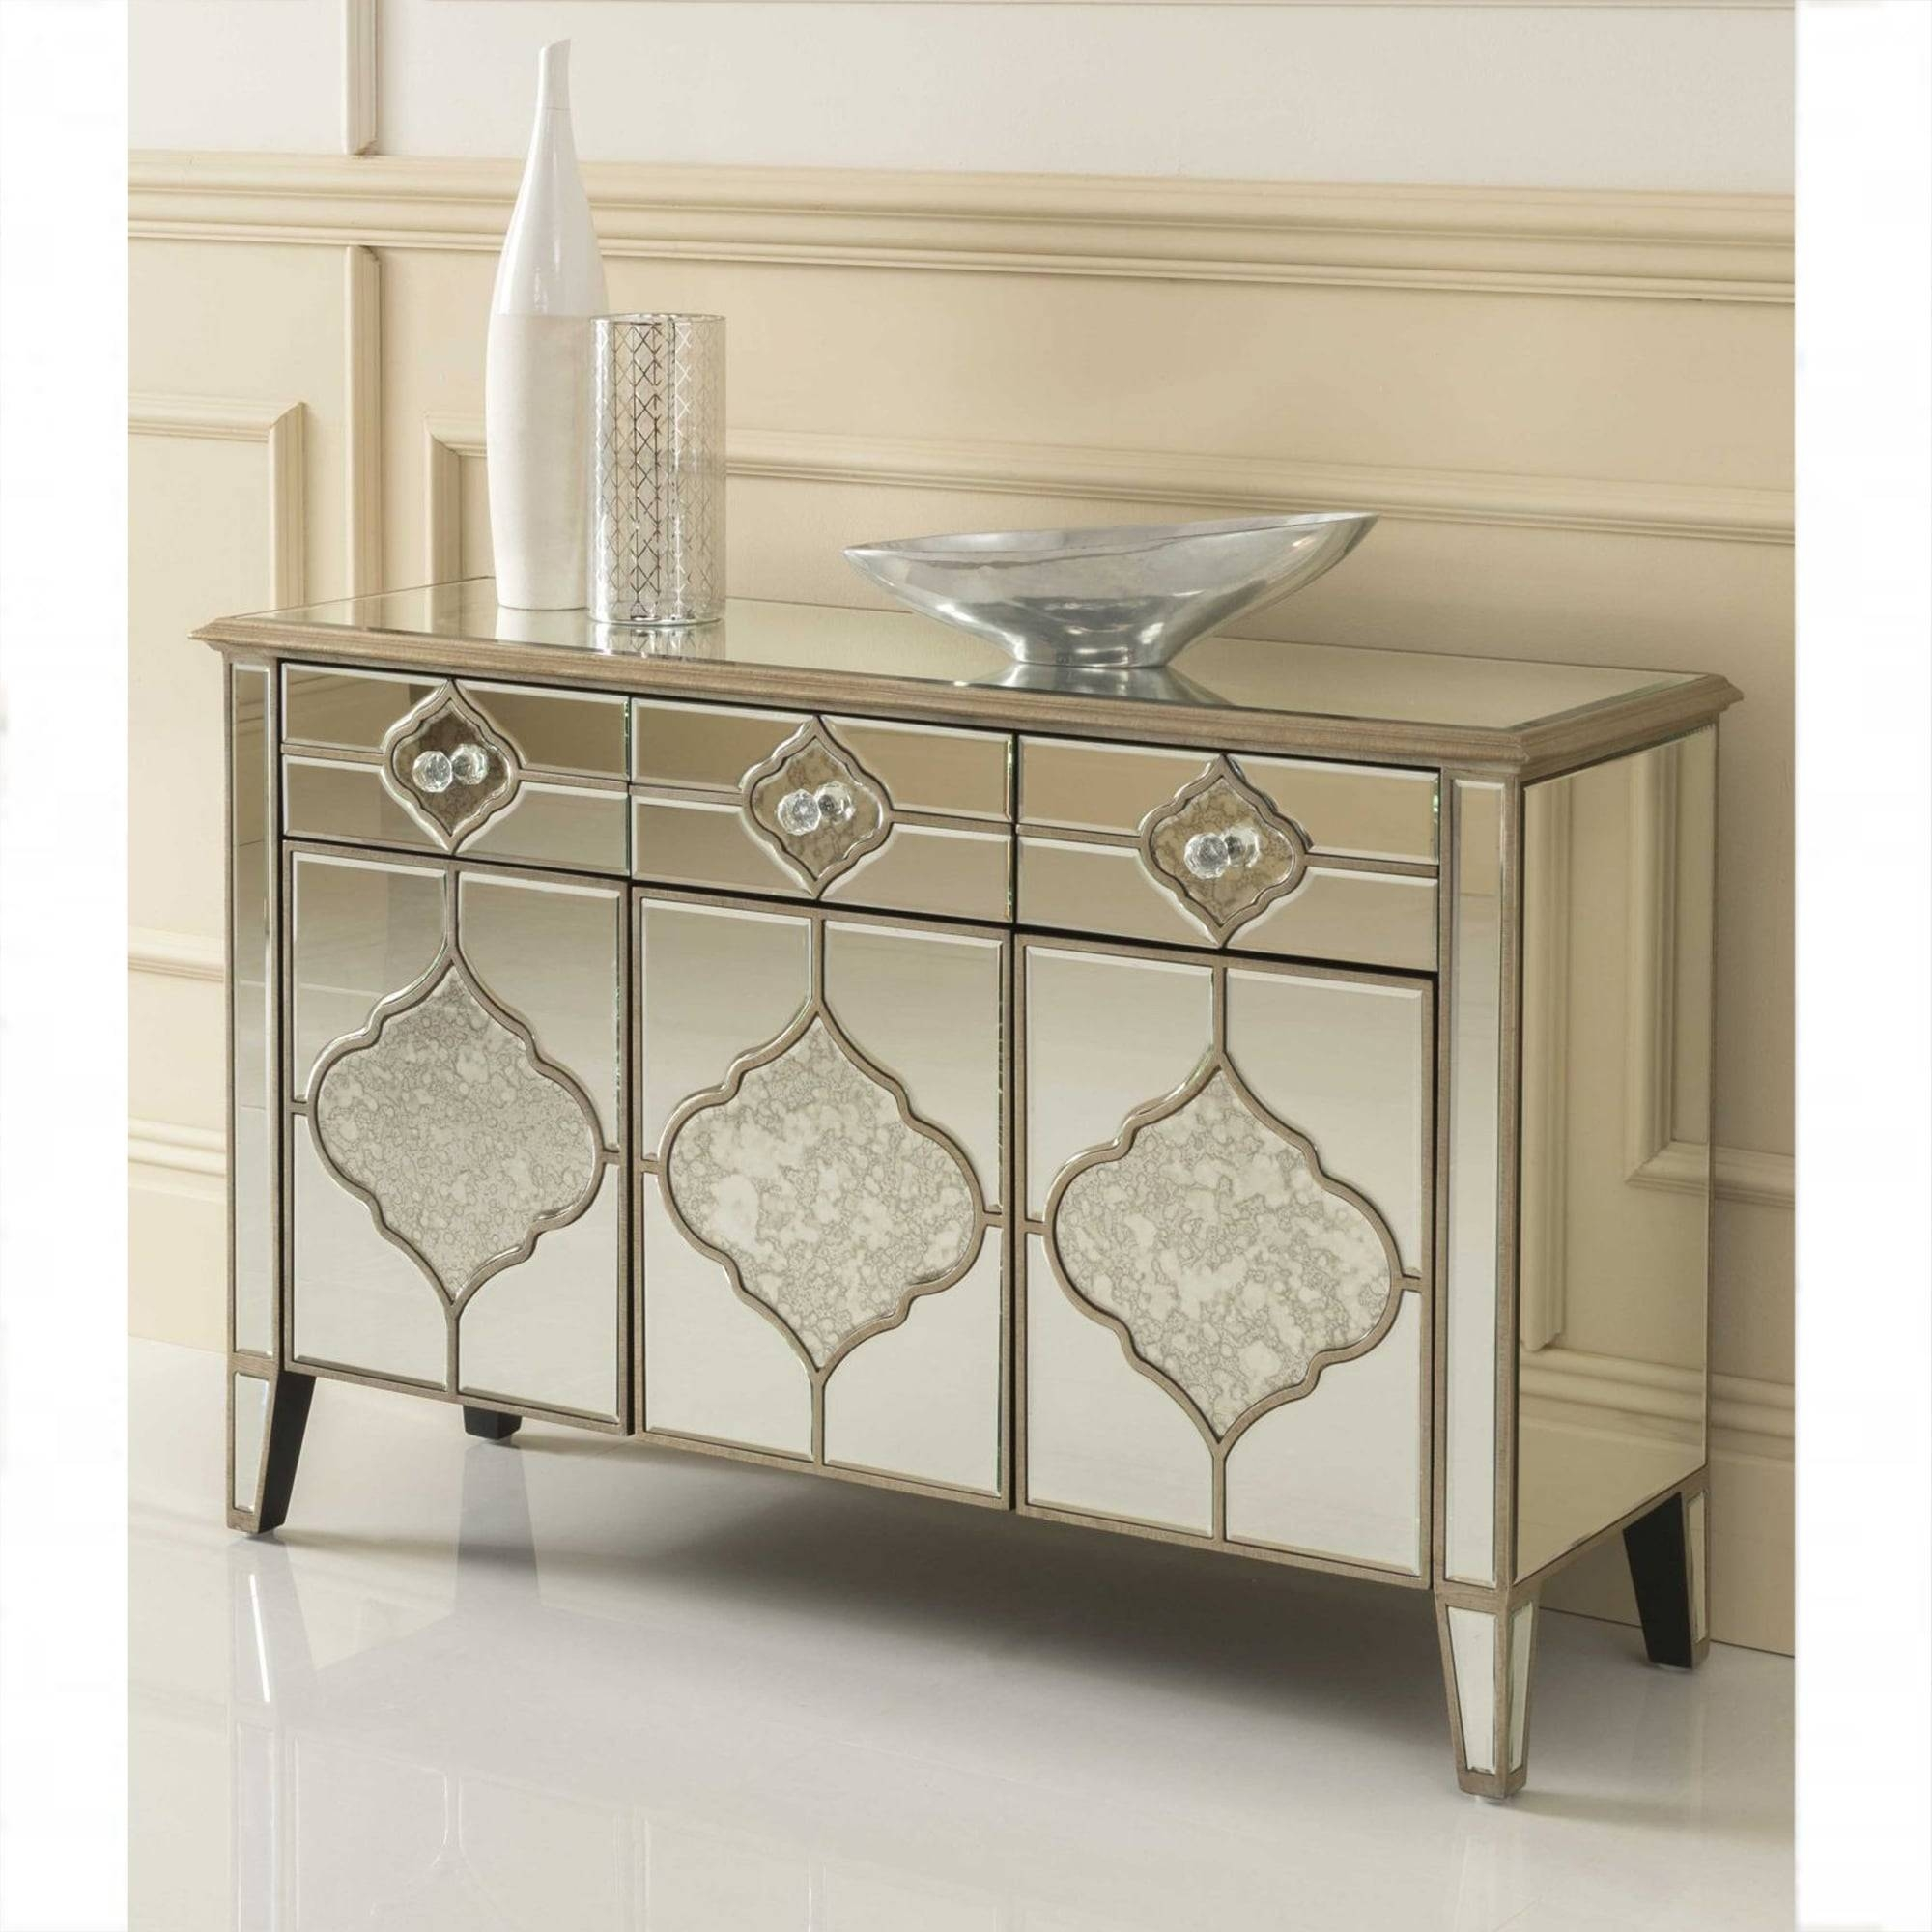 Sassari Mirrored Sideboard | Venetian Glass Furniture For Glass Sideboard (#16 of 20)